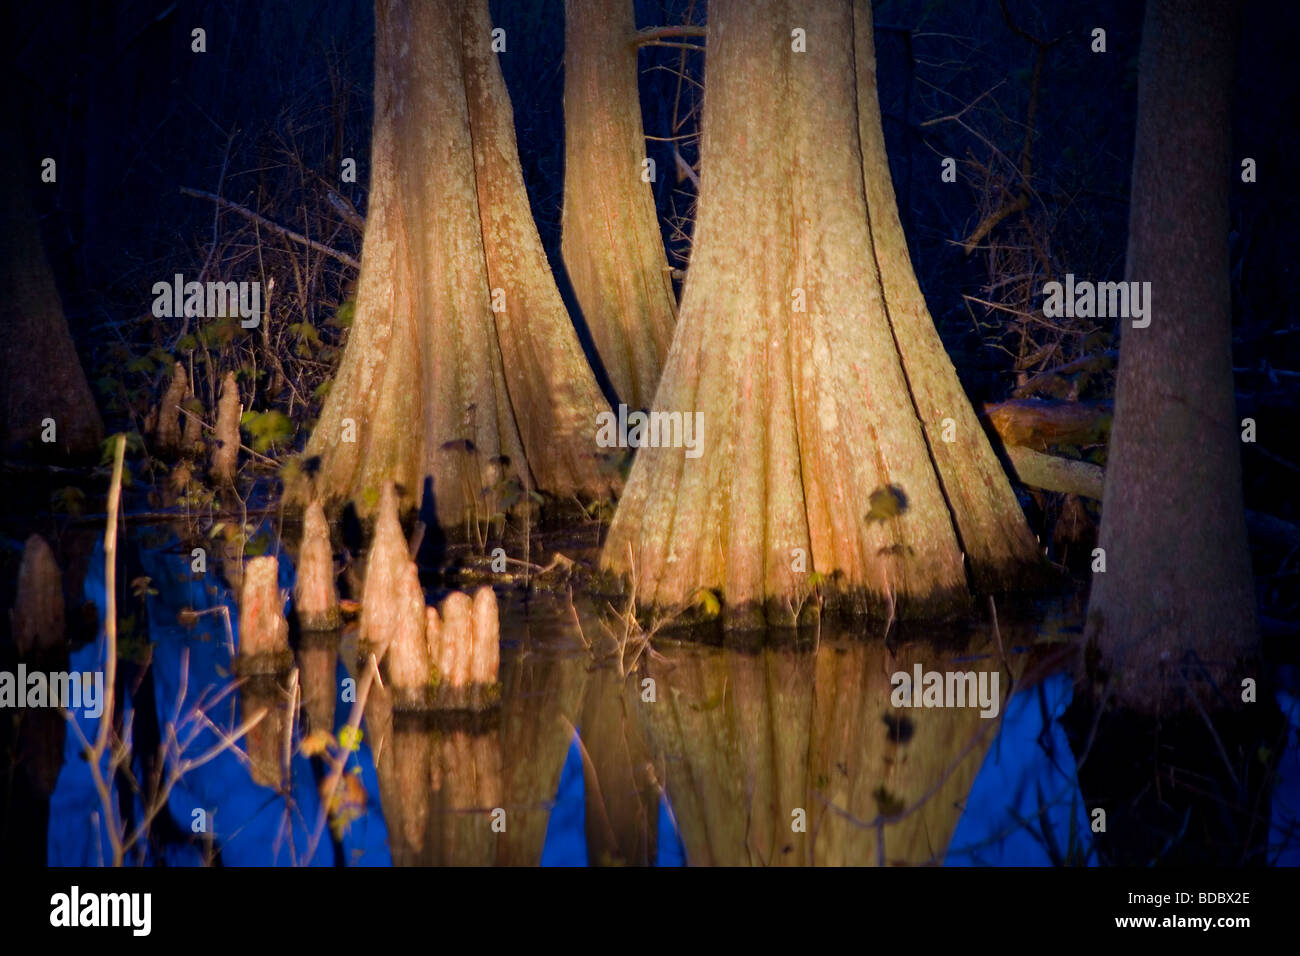 Otter Slough Conservation Area Cypress Trees - Stock Image